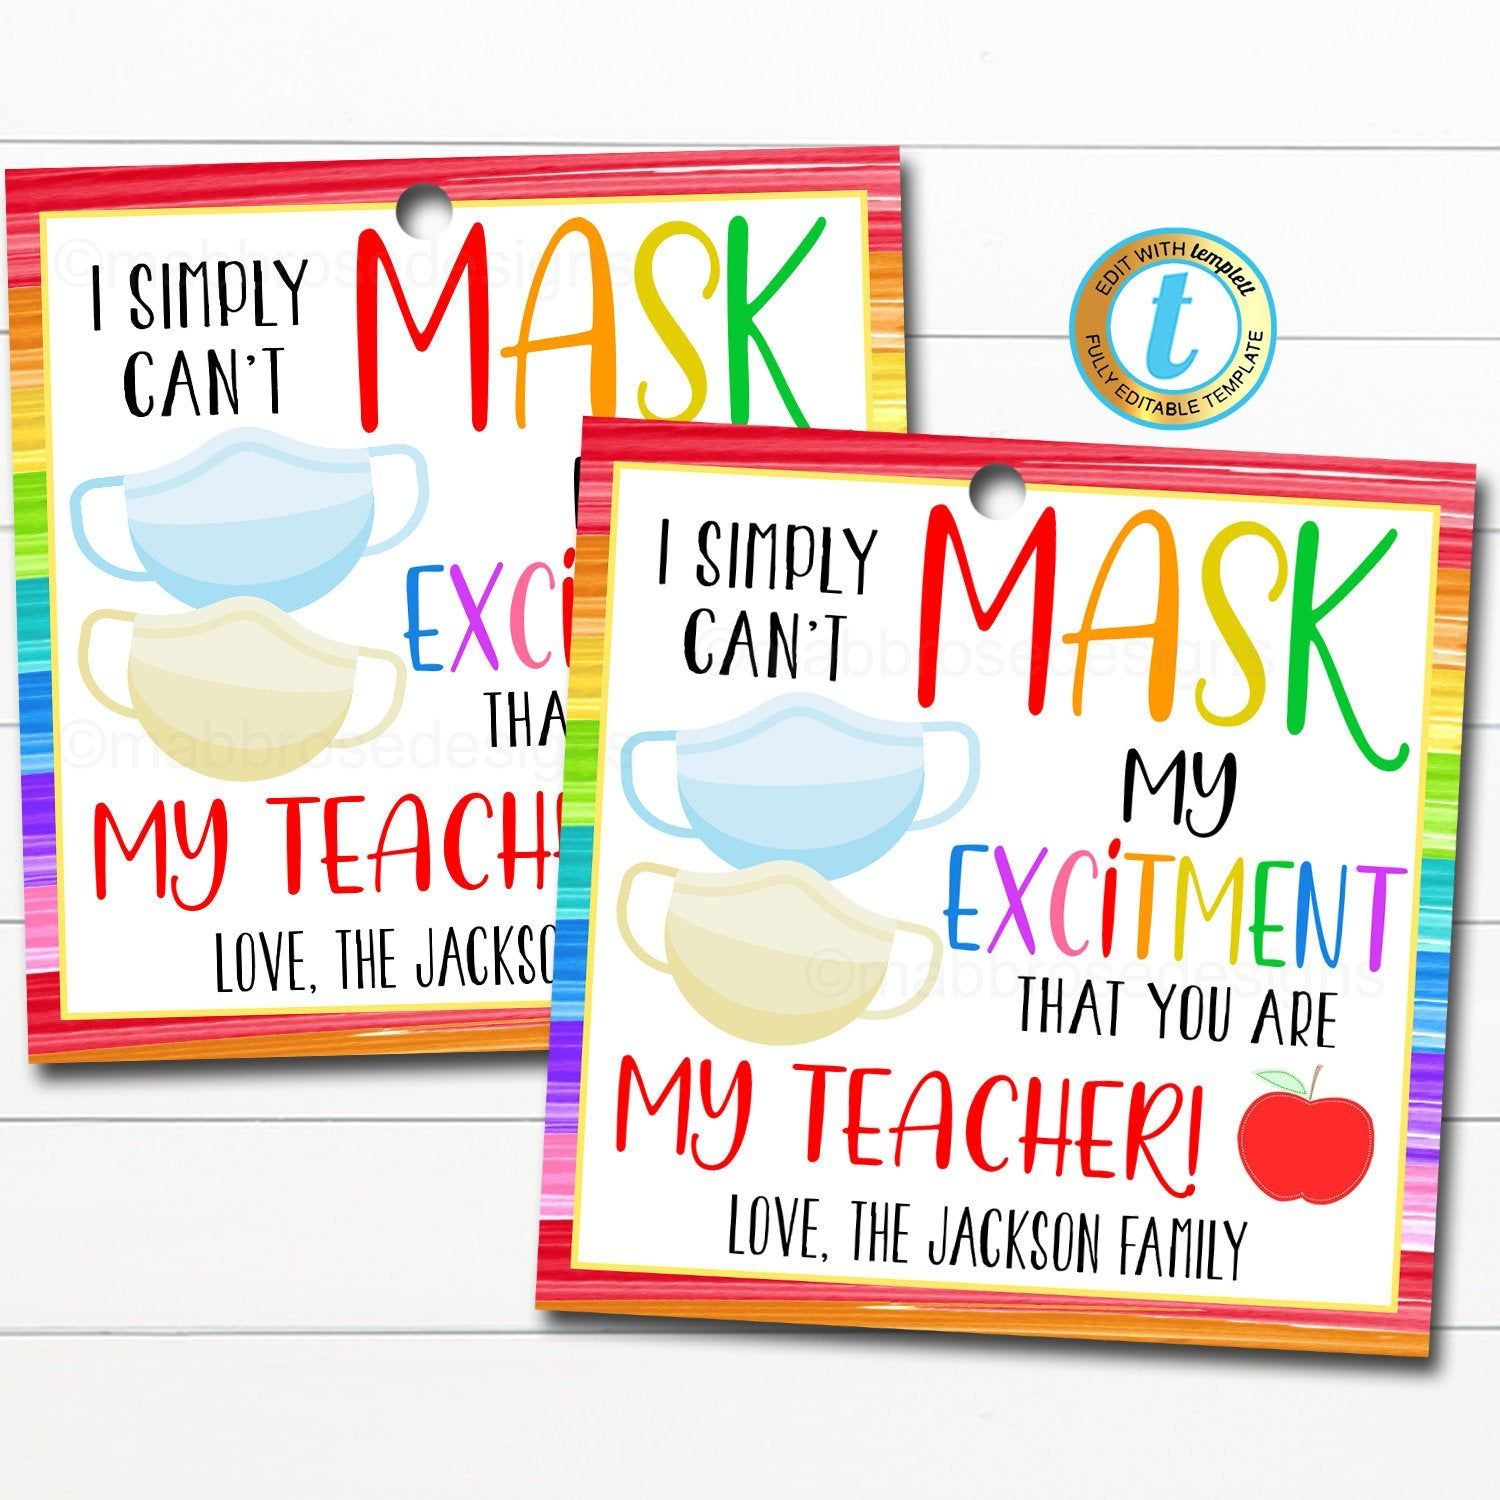 Coworker gift PTO PTA gift back to school first day of school teacher appreciation xmas gift Personalized coffee gift tag for teacher